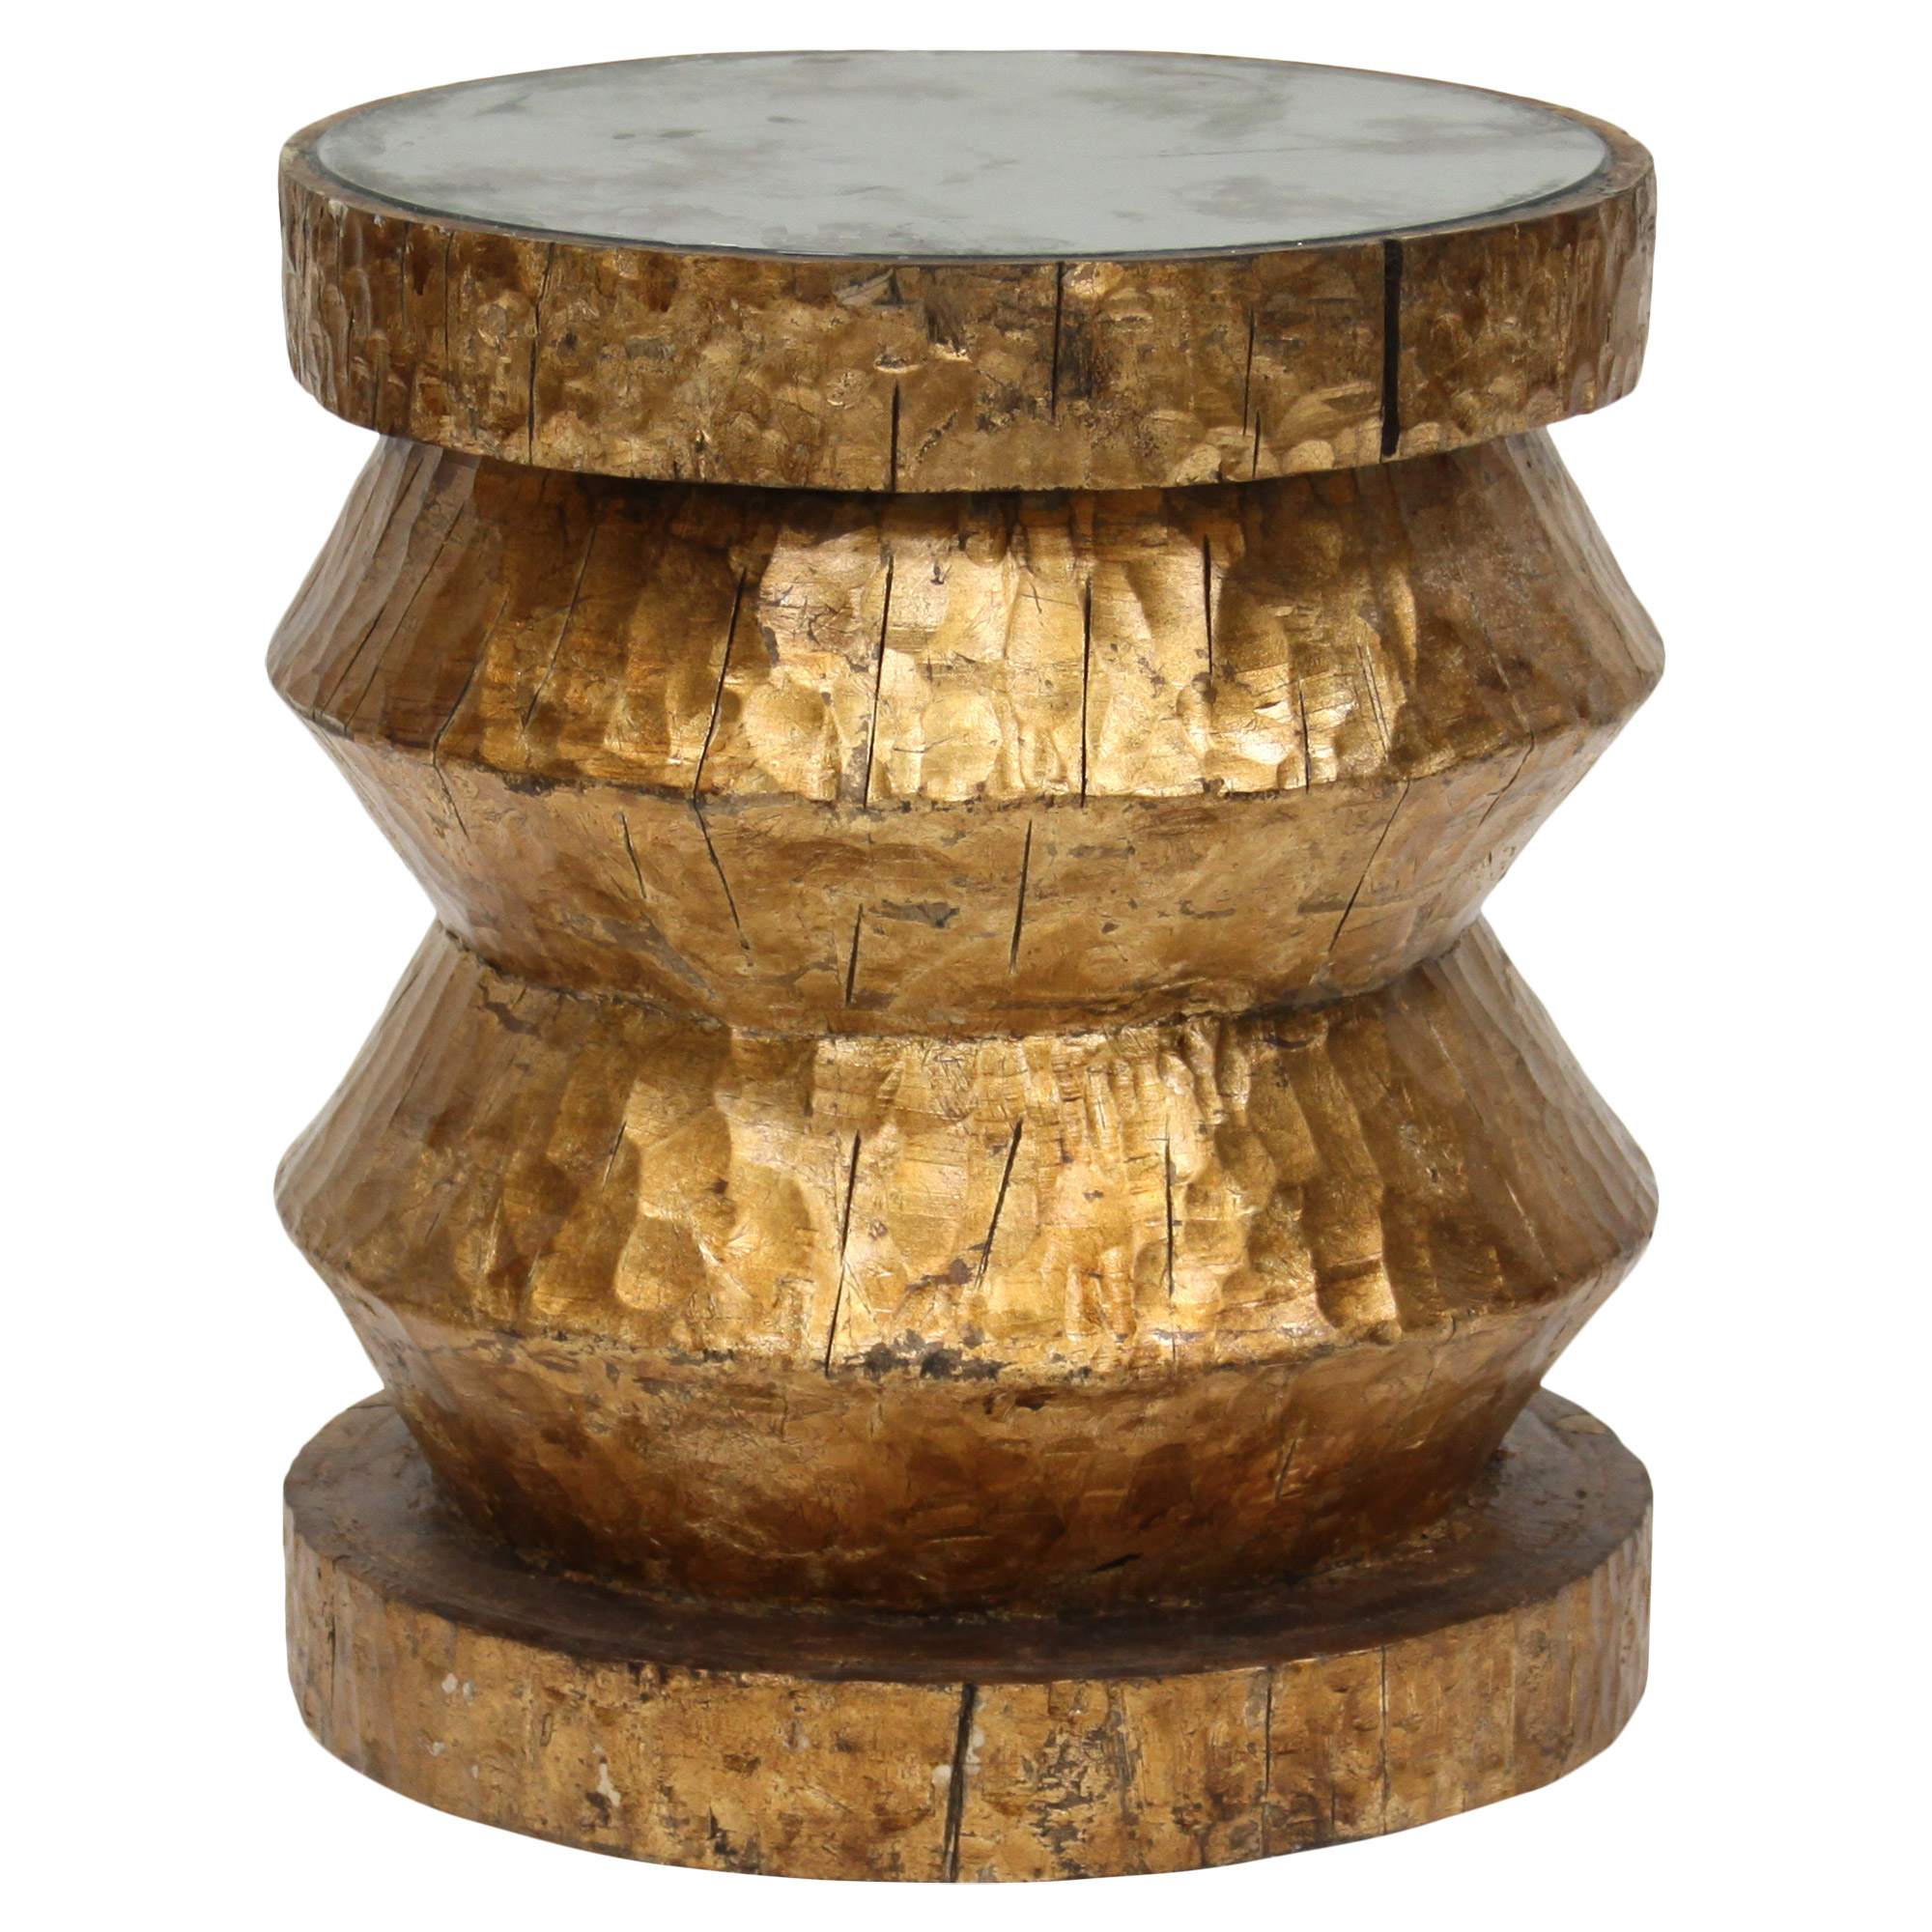 Bimini Global Bazaar Rustic Gold Stool End Table